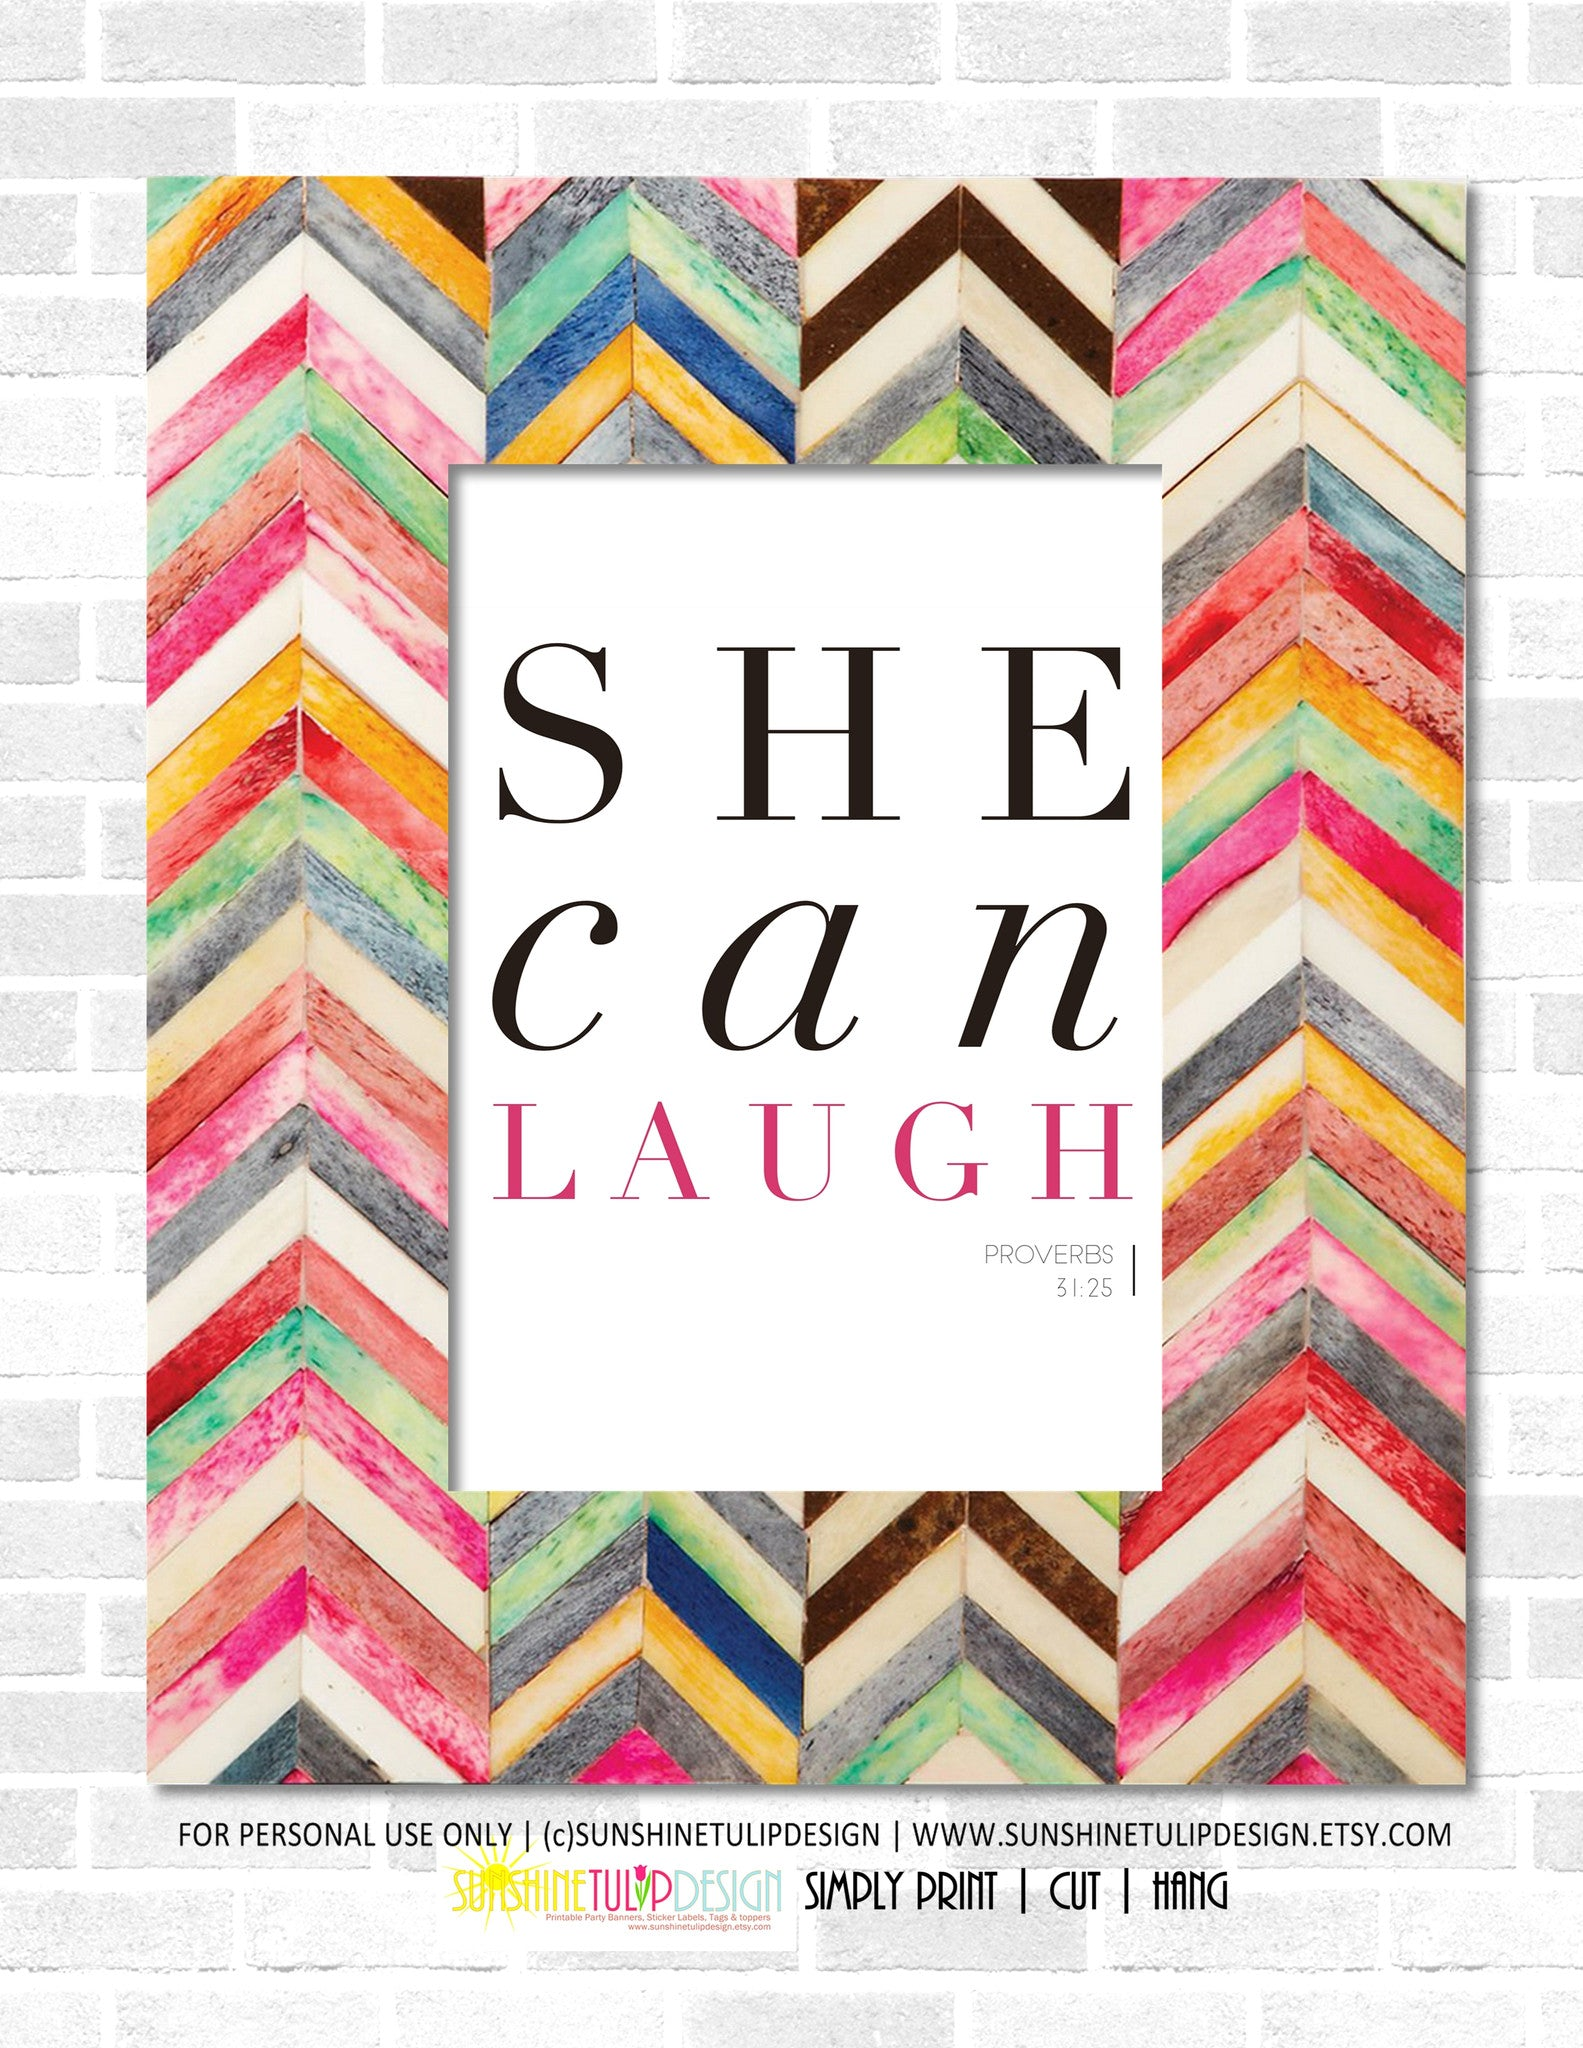 image relating to Planner Cover Printable identified as Printable She Can Chuckle Wall Artwork, Proverbs 31, Scripture Wall Artwork, Planner Include Artwork through SUNSHINETULIPDESIGN